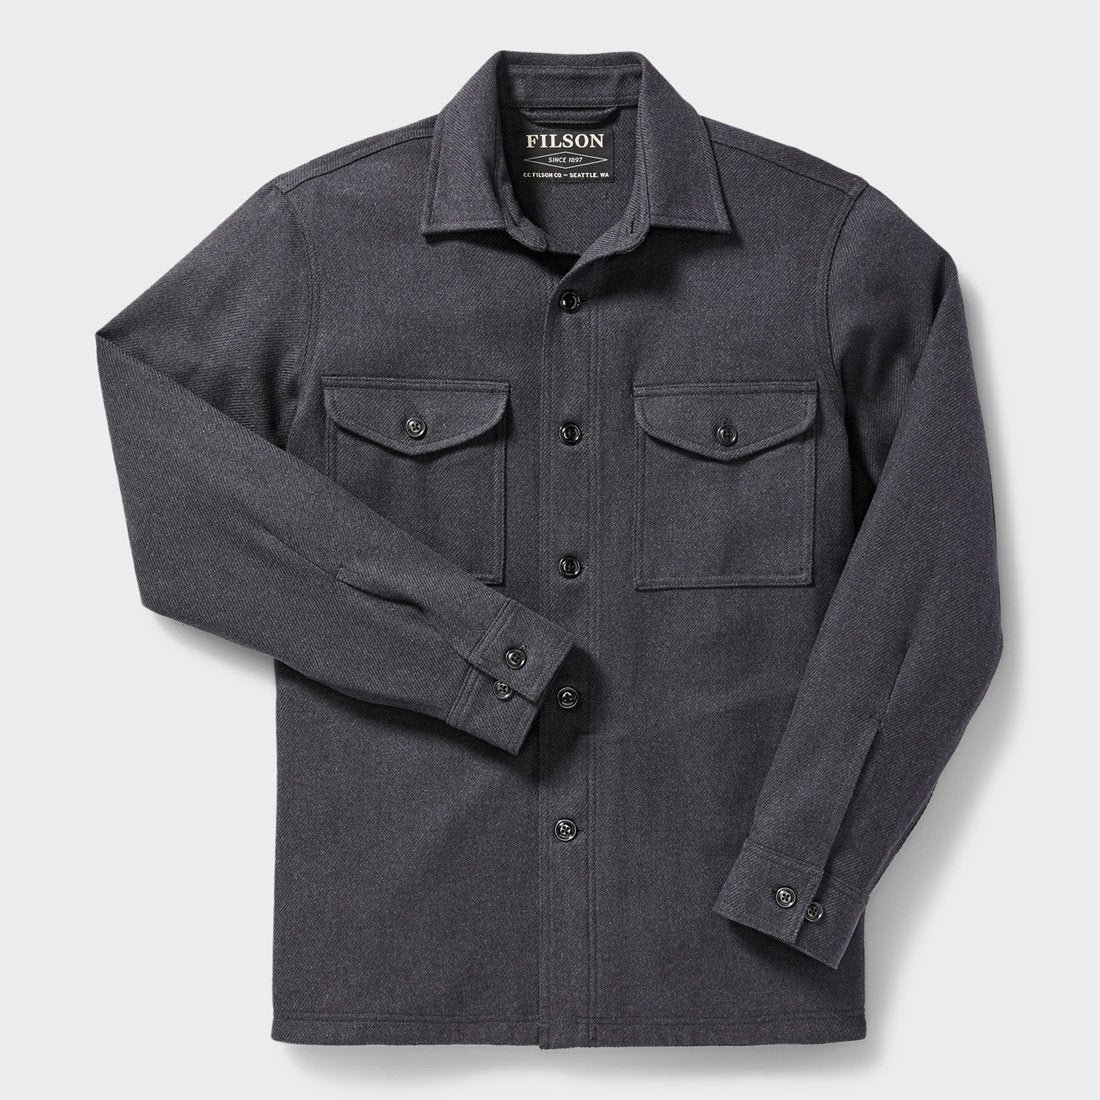 Filson Deer Island Jac-Shirt Navy Heather